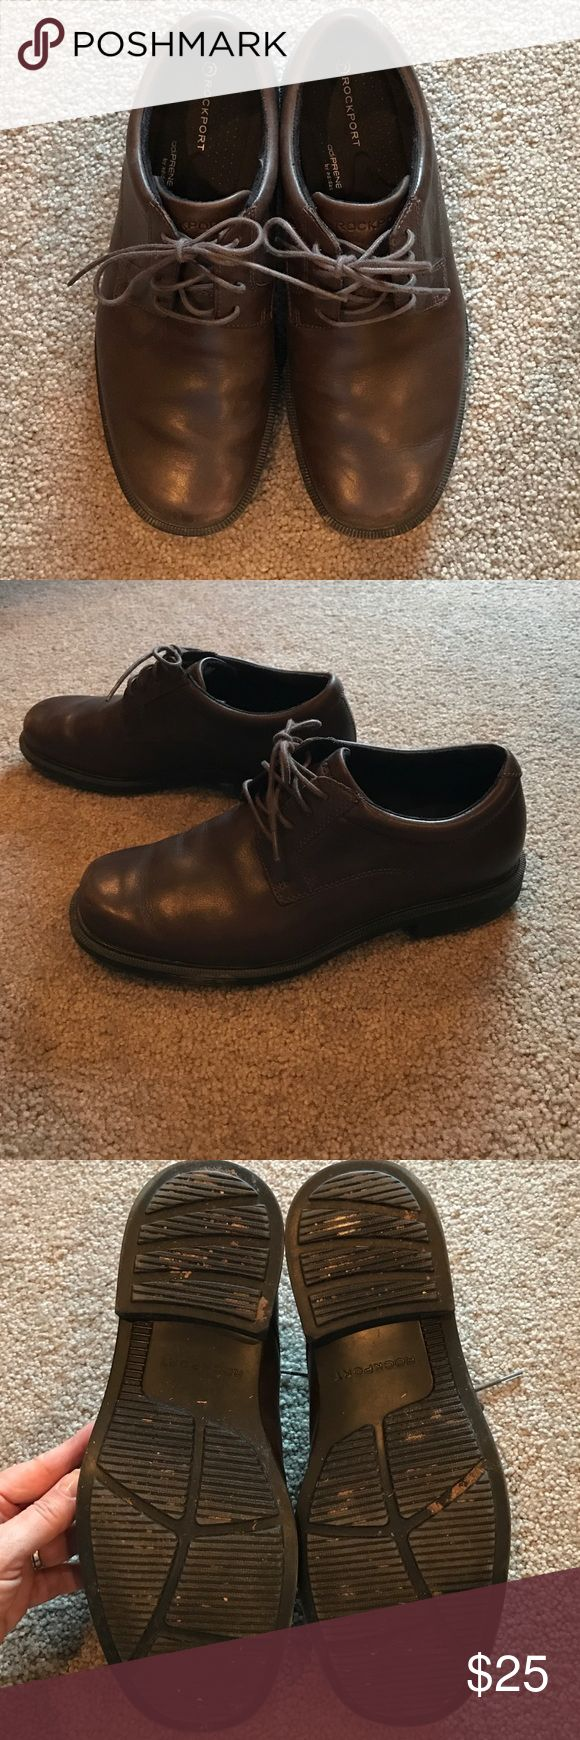 Rockport leather men's brown loafers size 7.5